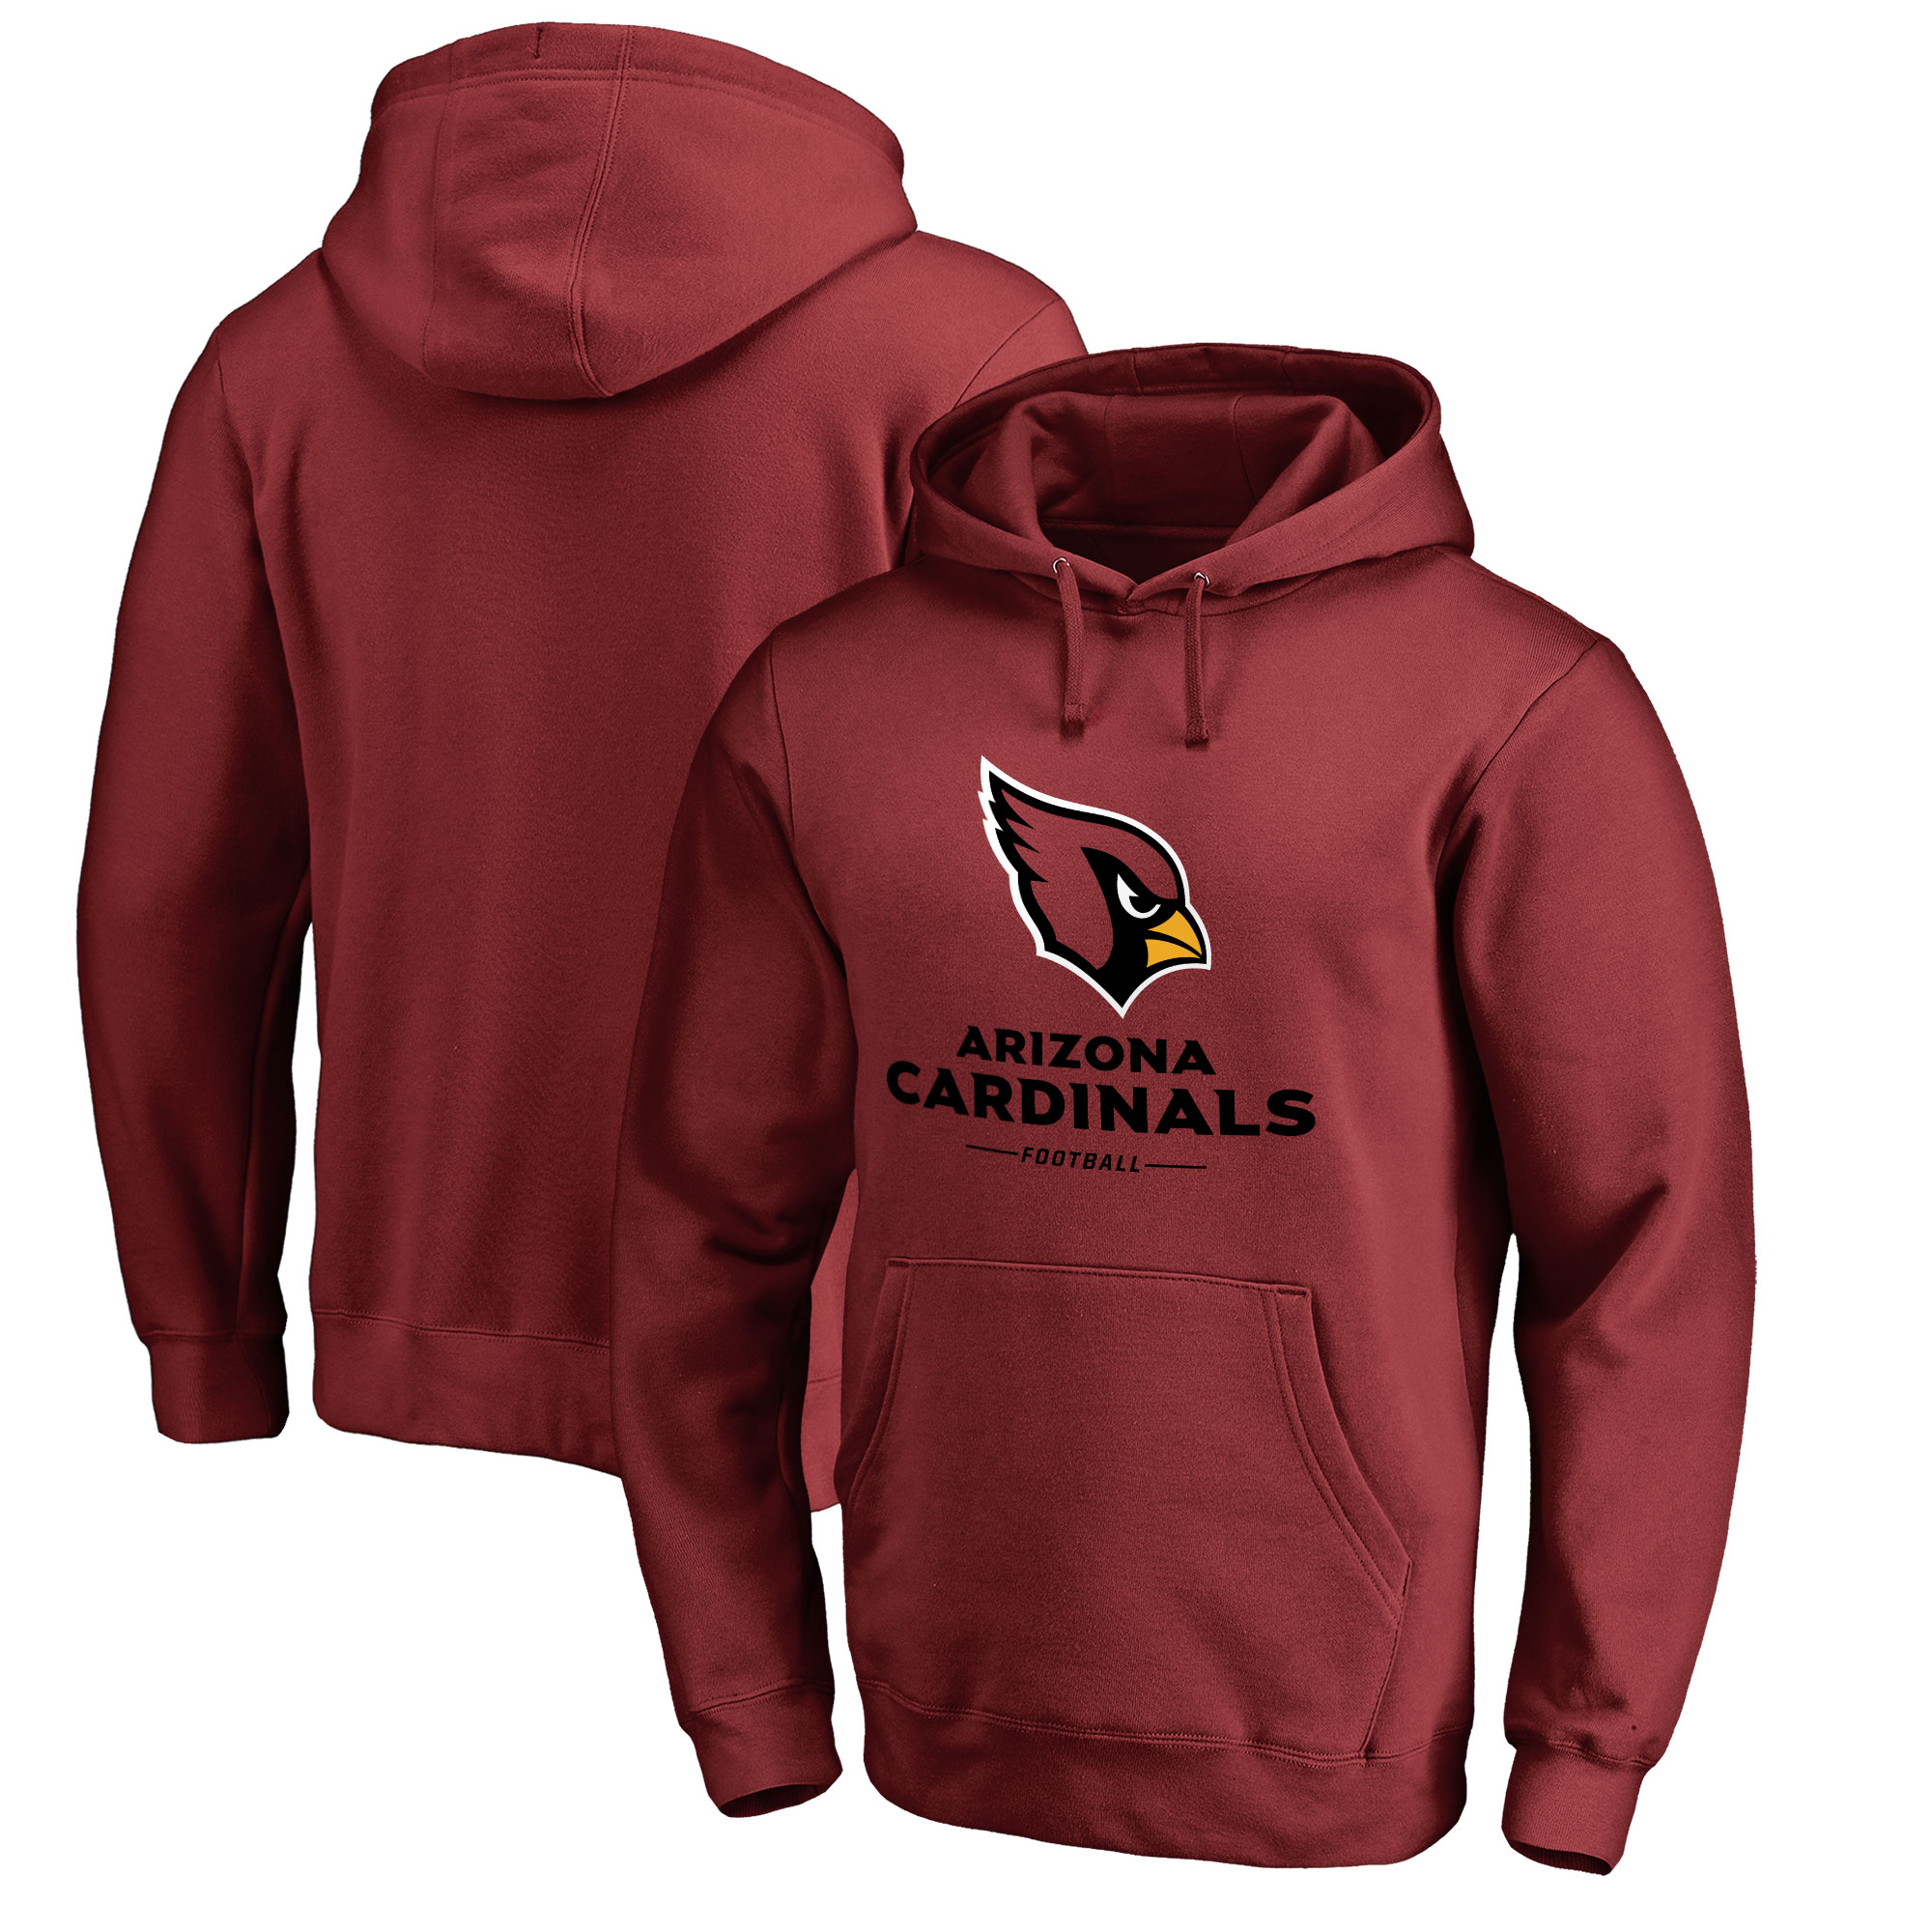 Arizona Cardinals Pro Line by Fanatics Branded Team Lockup Pullover Hoodie - Cardinal